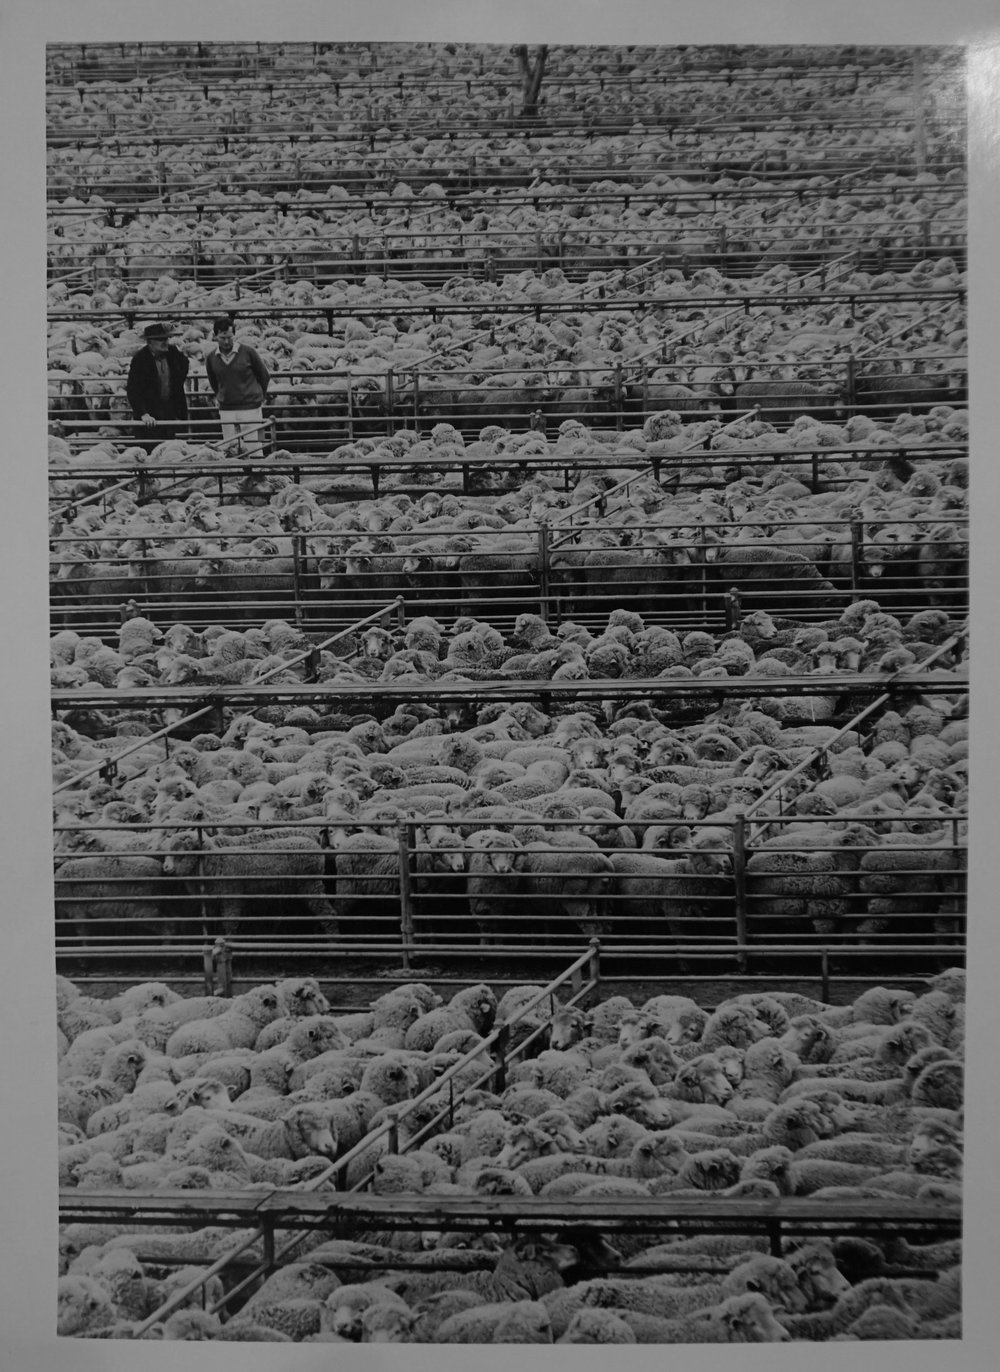 37. Richard Woldendorp, 'Wesfarmers Sheep Sale, Katanning WA', BW117, taken in c.1970, printed in 2013